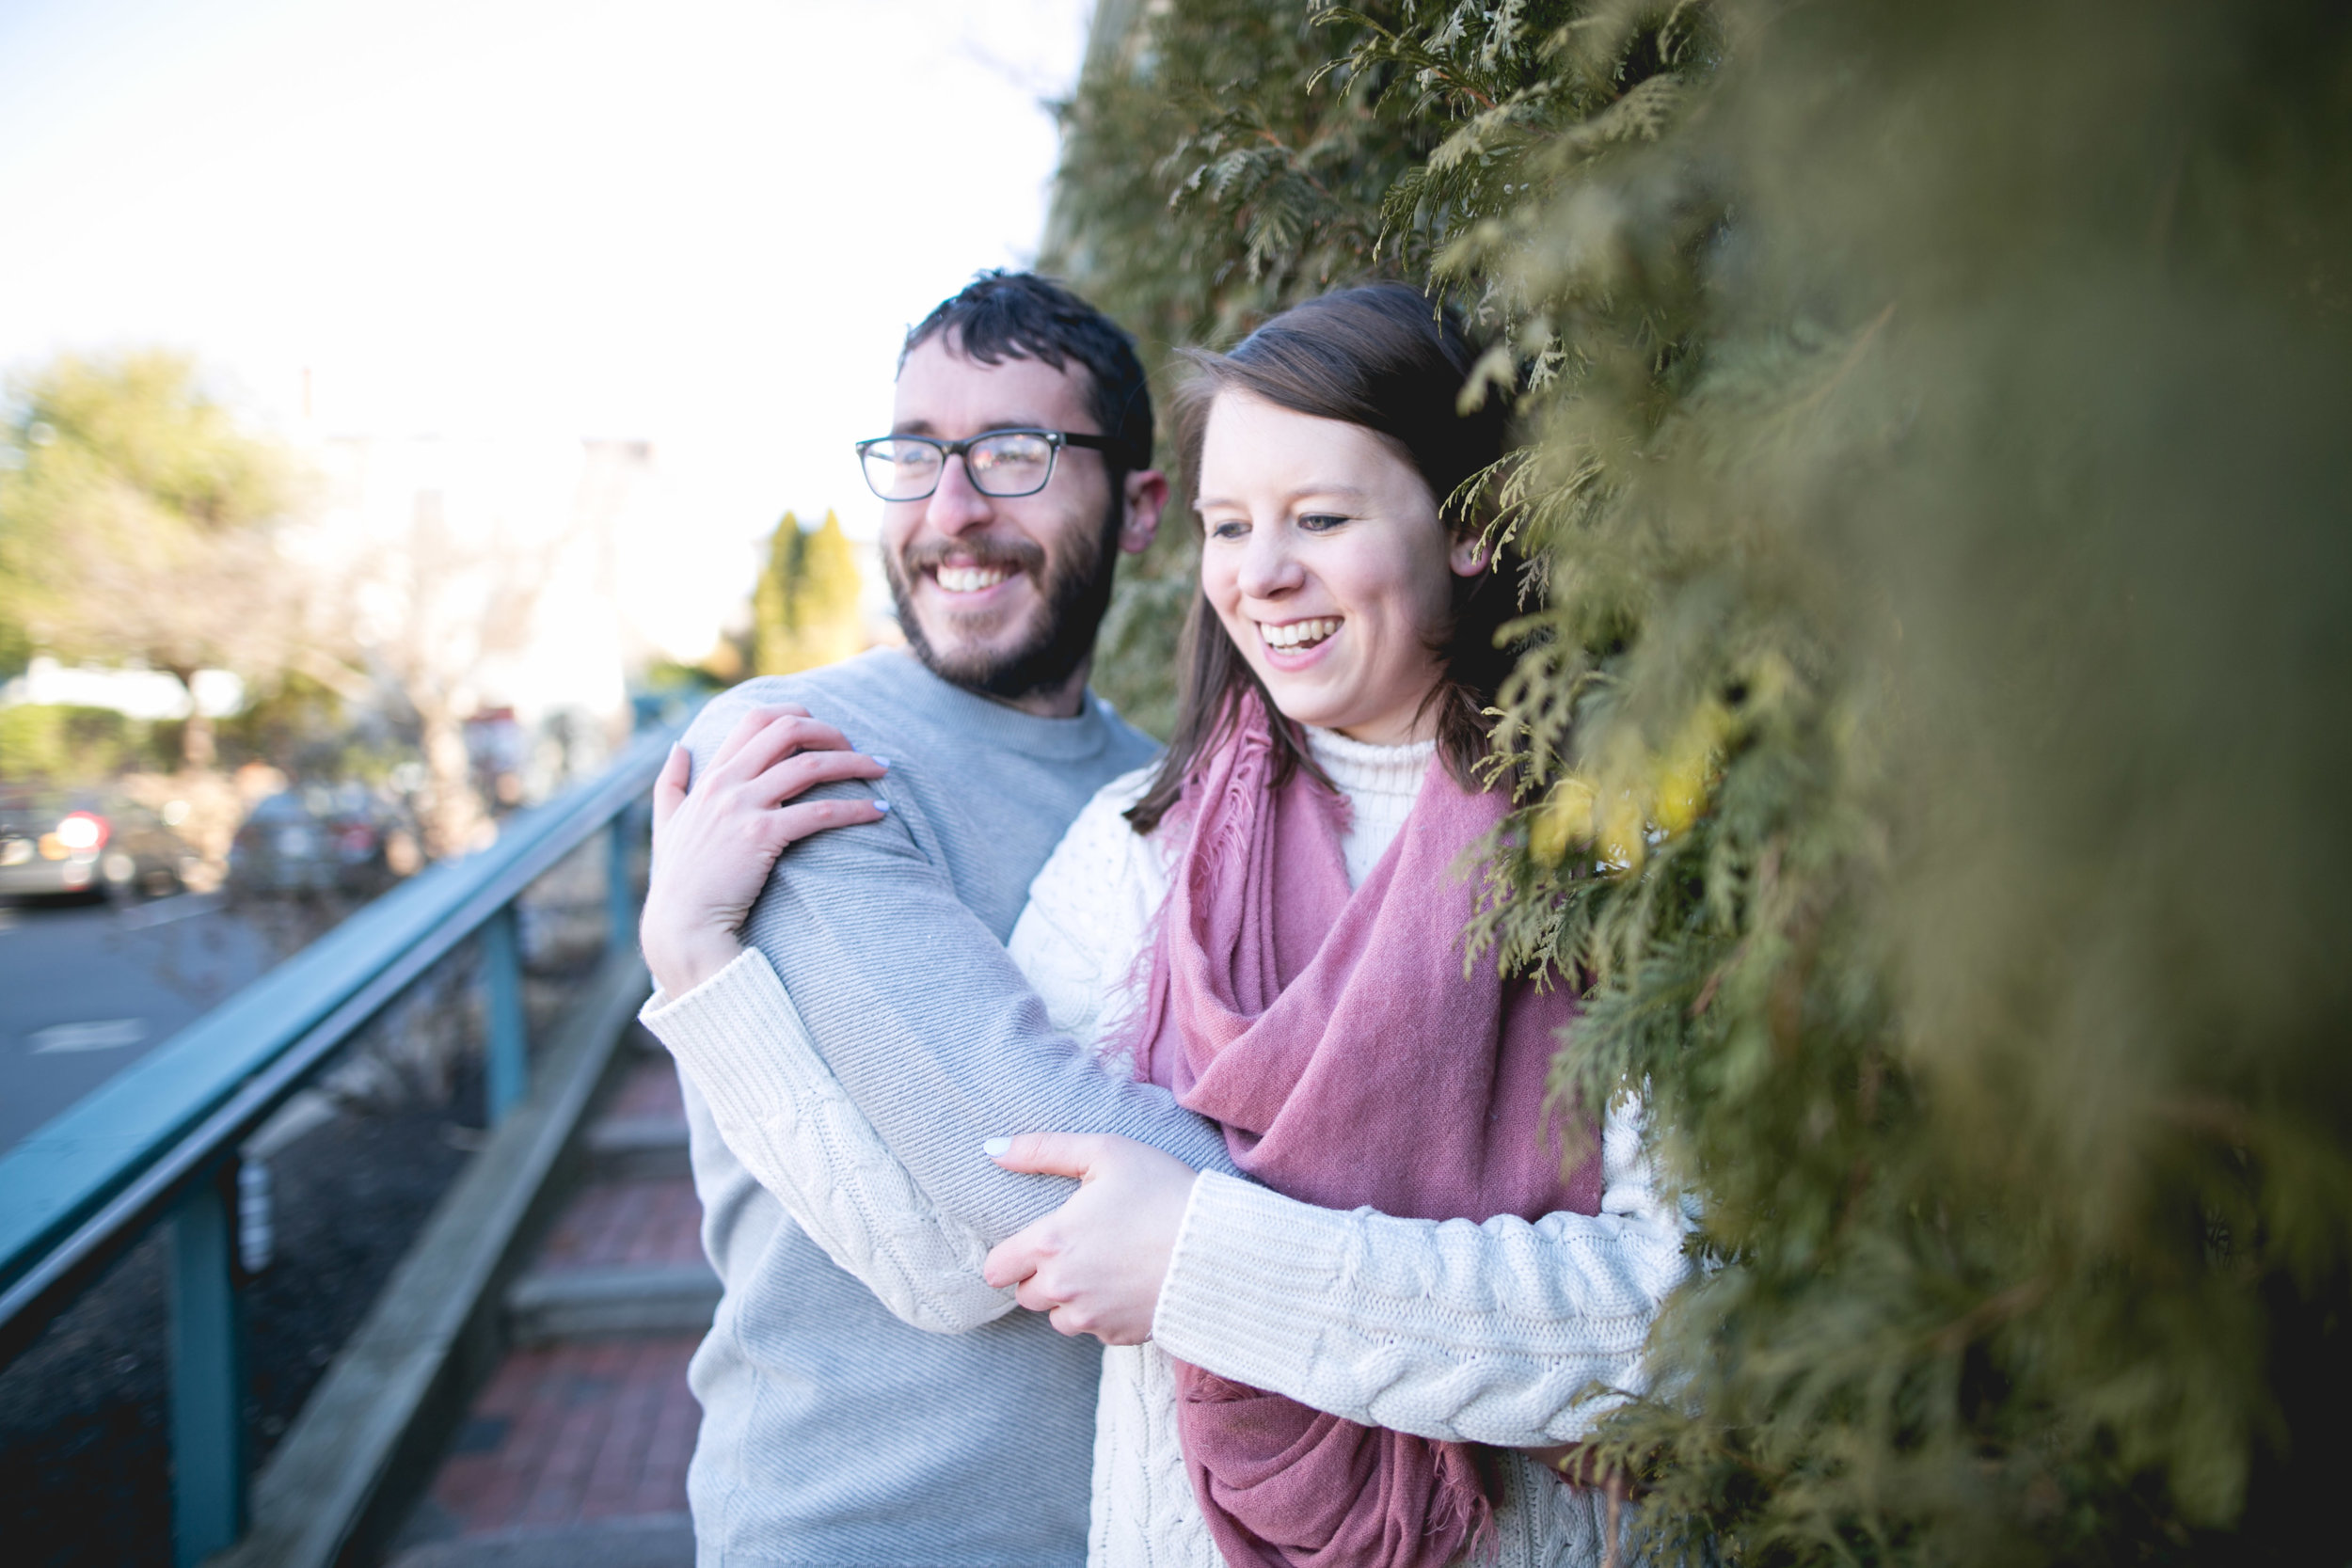 Isaac Newtons Newtown PA Engagement Session 7